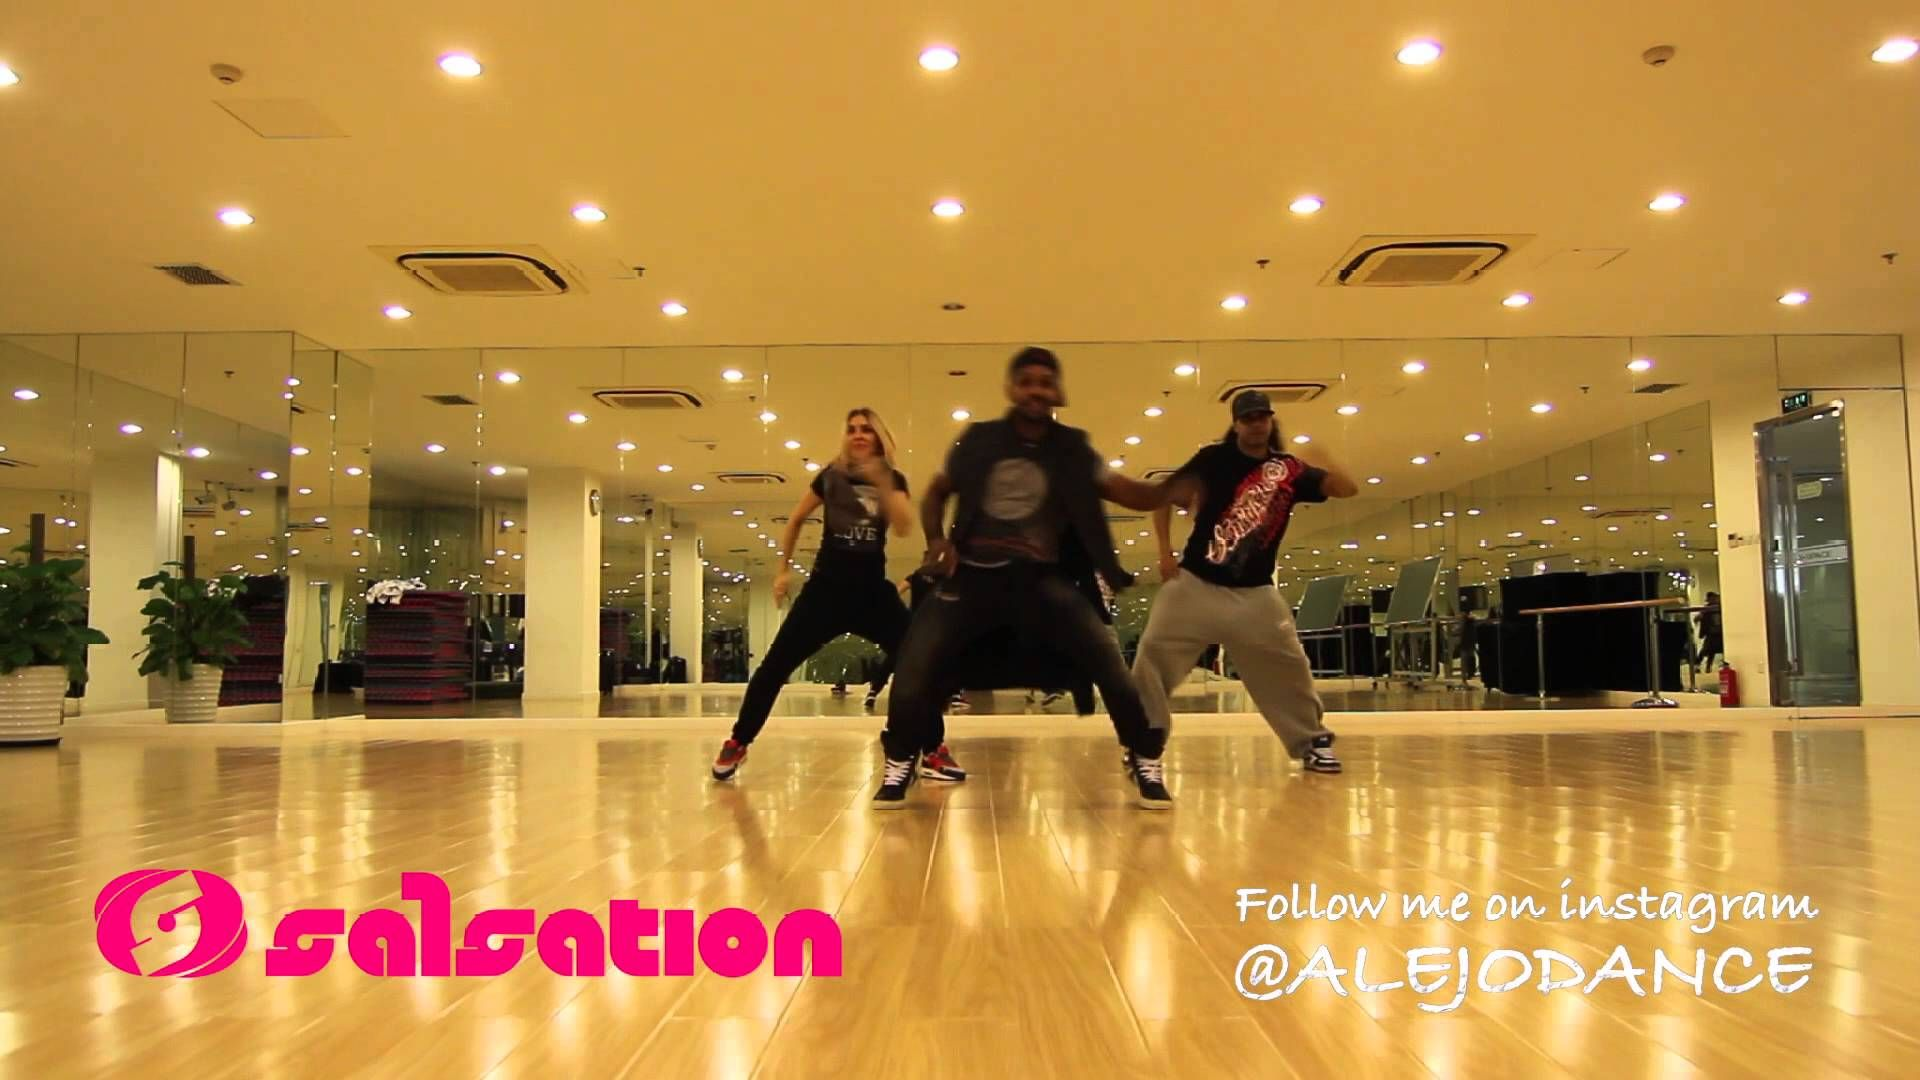 A Basic Salsation Choreography To This Great Song Mixing Some